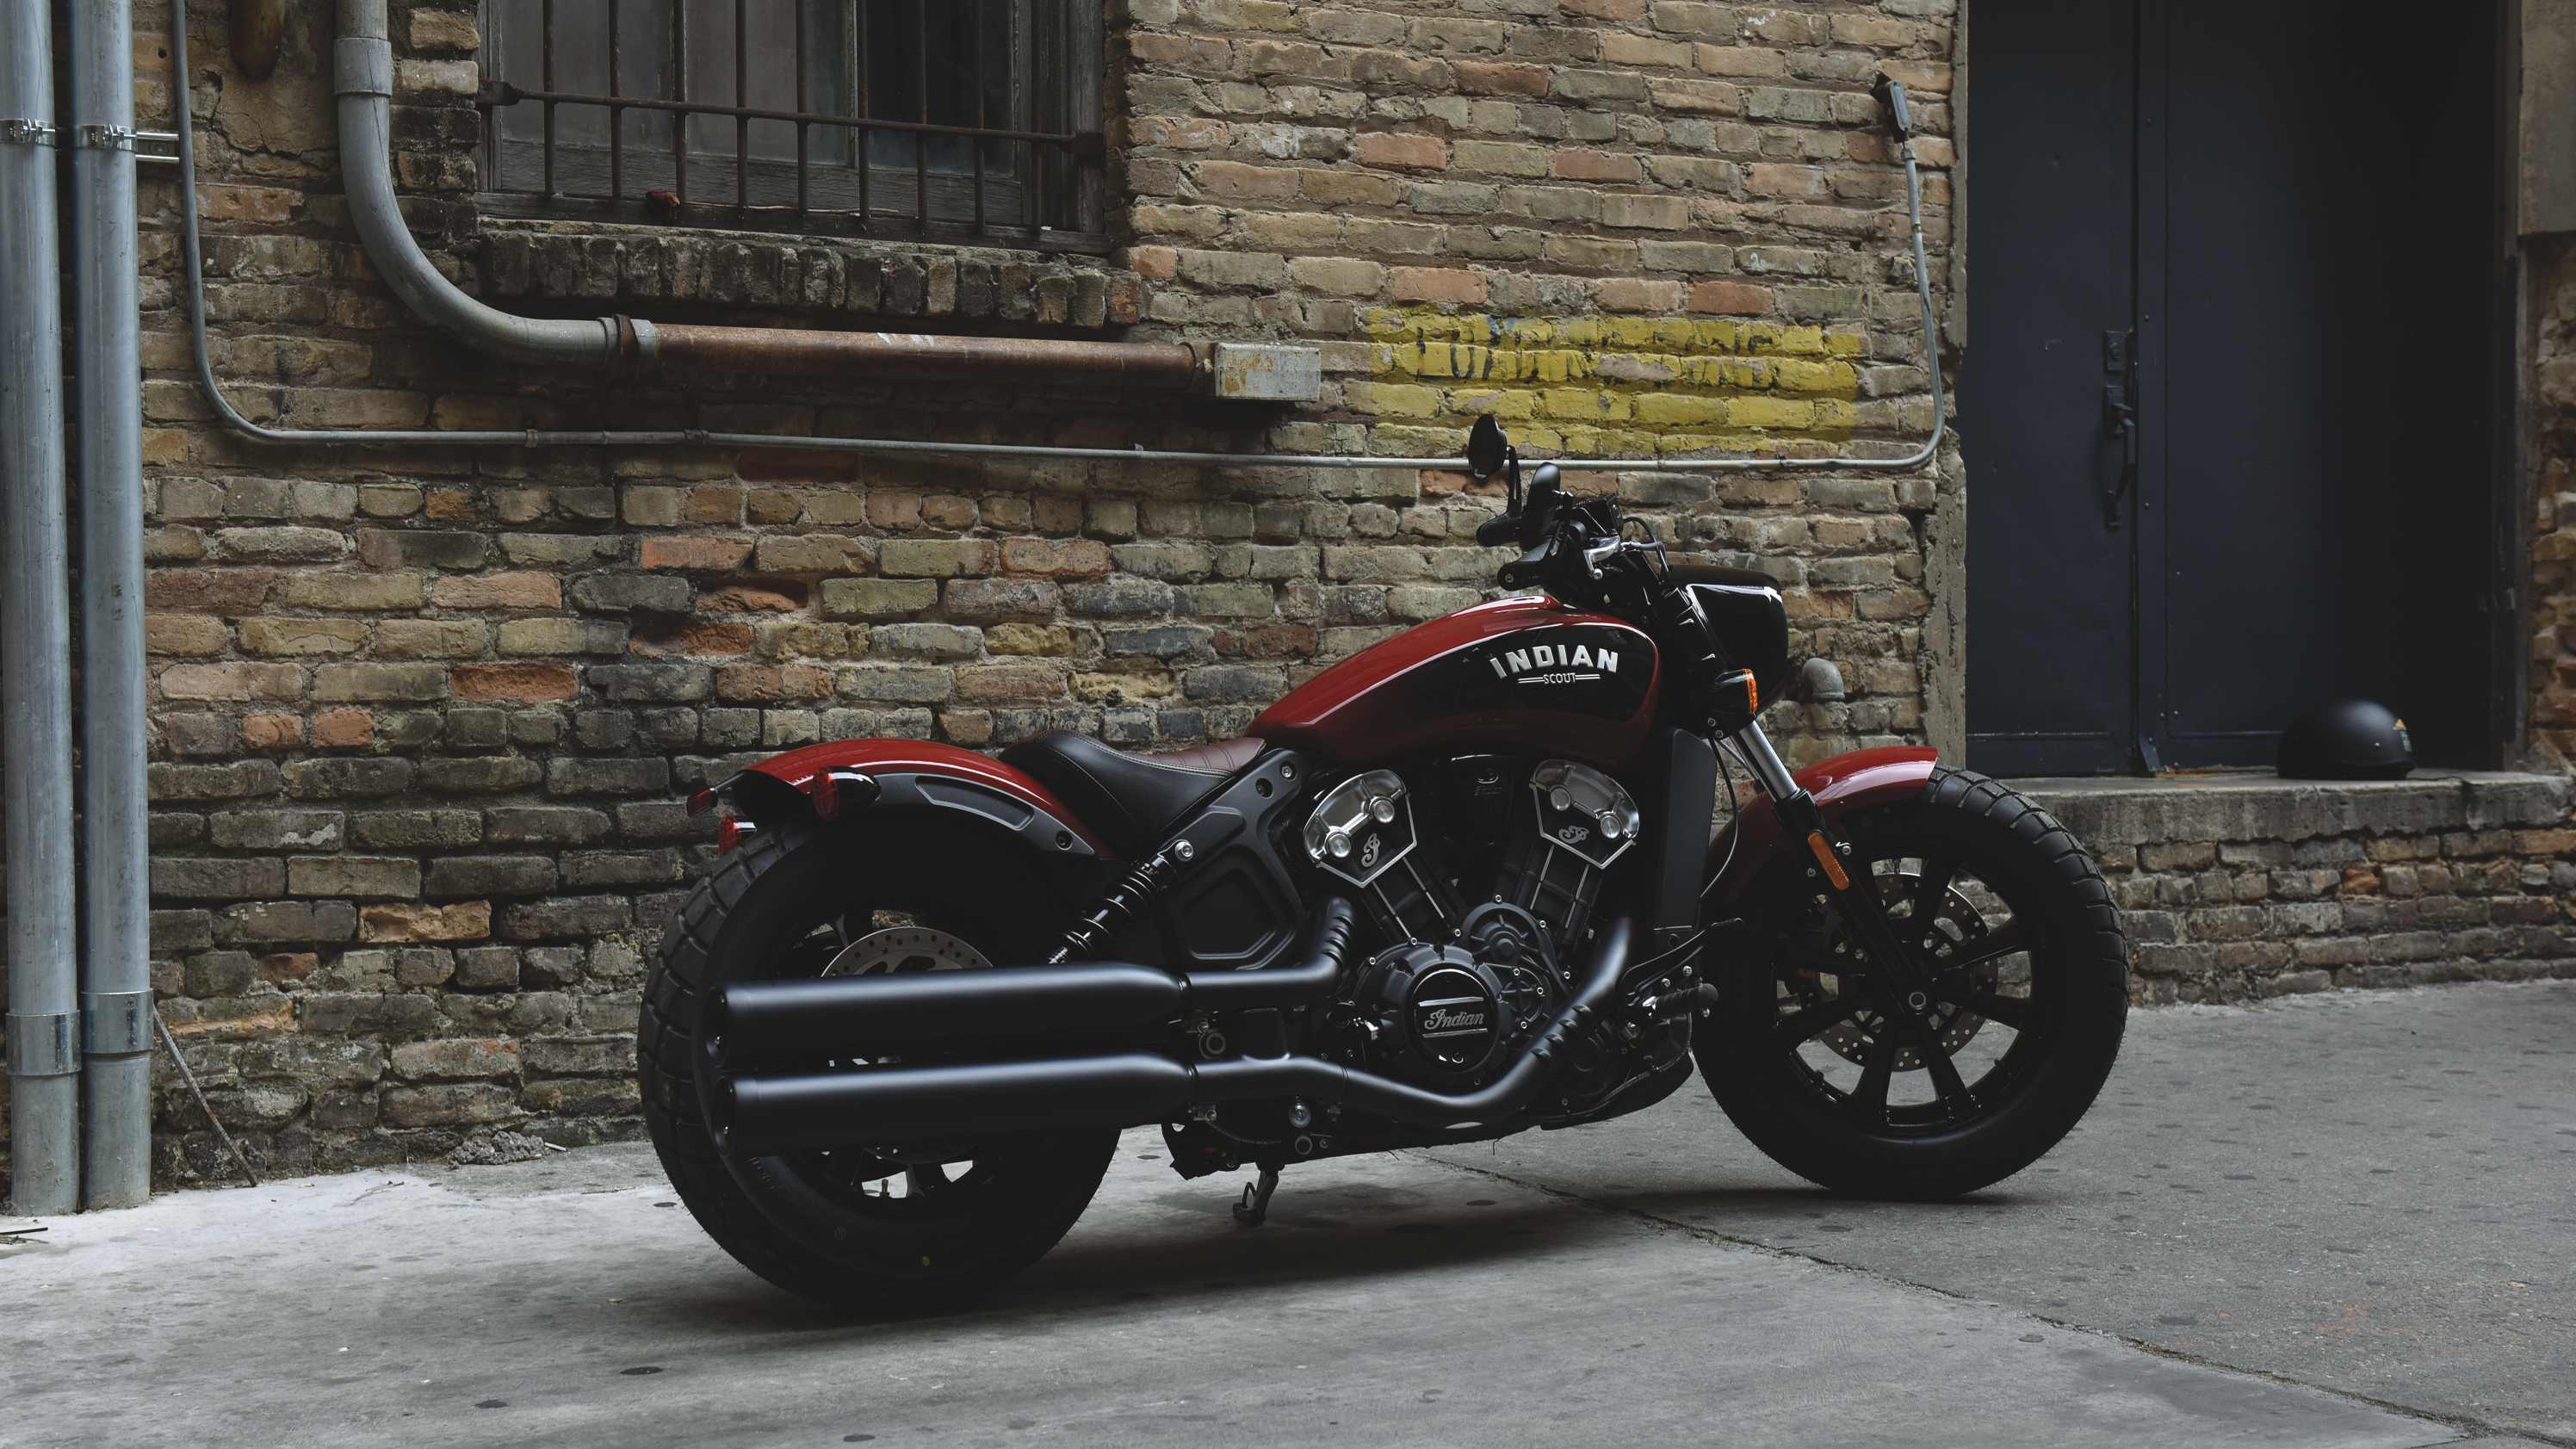 2018 indian motorcycles scout bobber how does it stack - Indian scout bike hd wallpaper ...